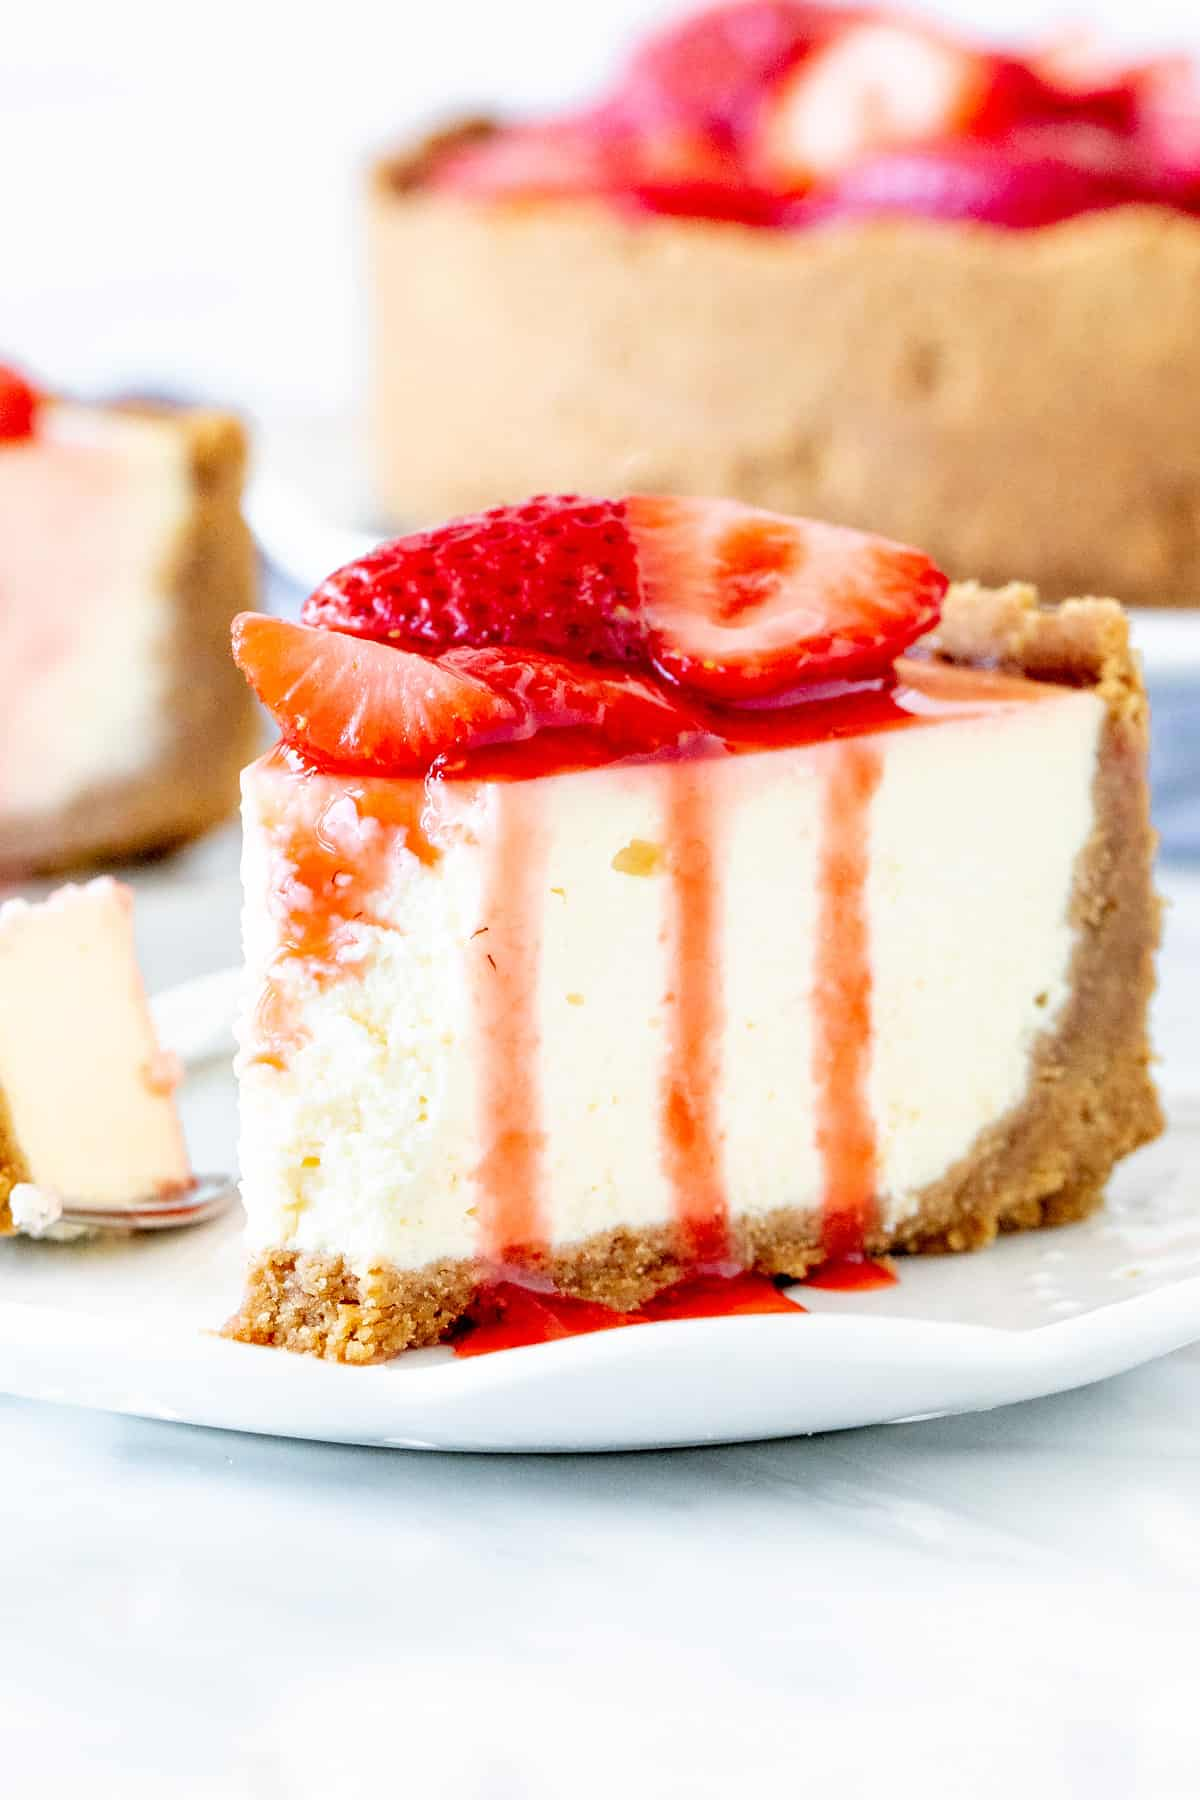 Slice of strawberry cheesecake on a plate